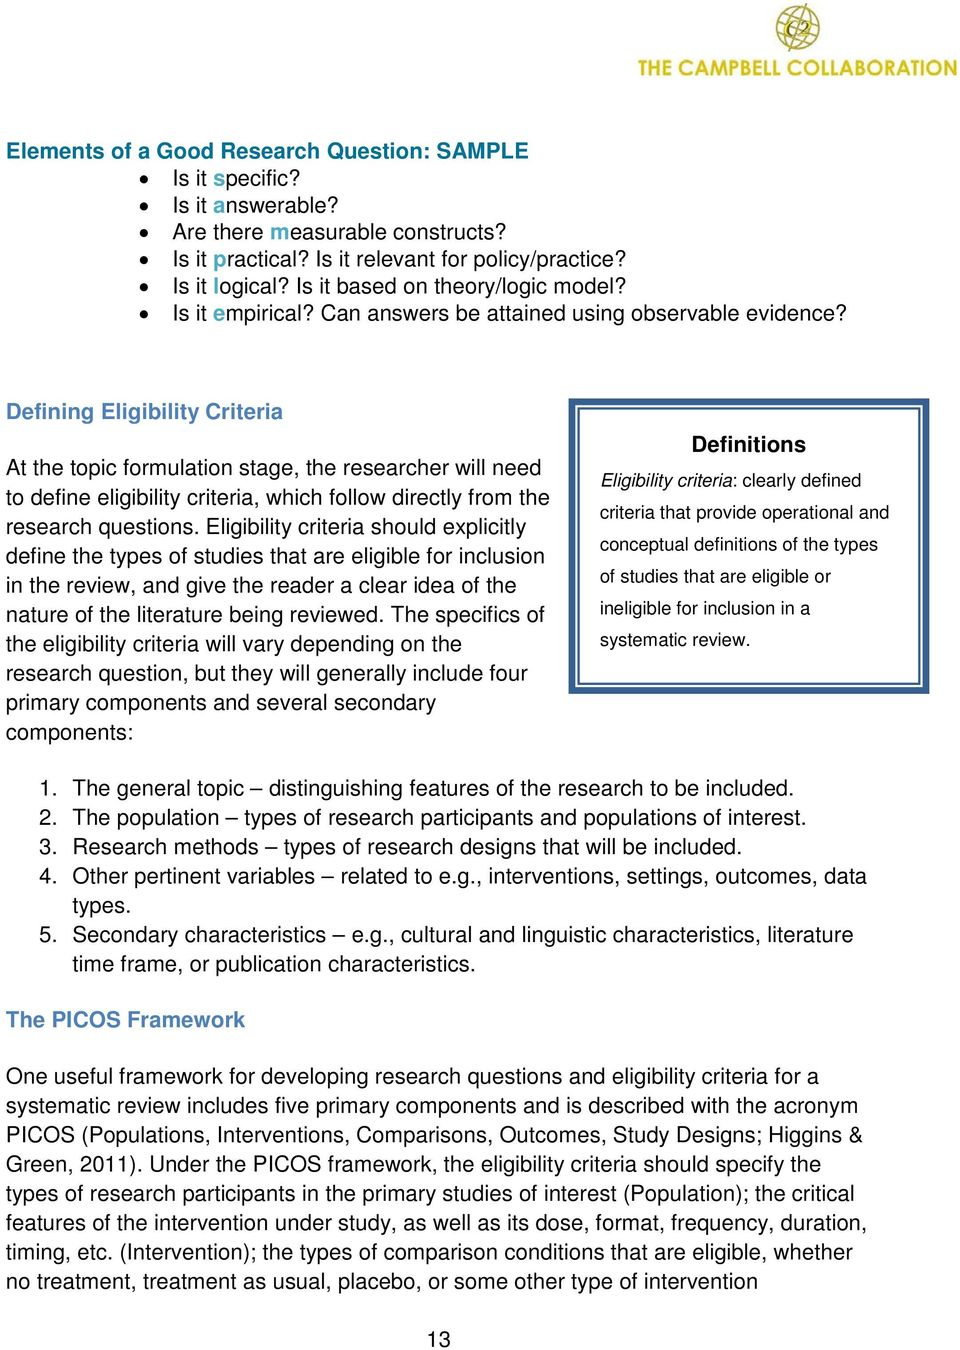 how to define search strategy in a systematic review